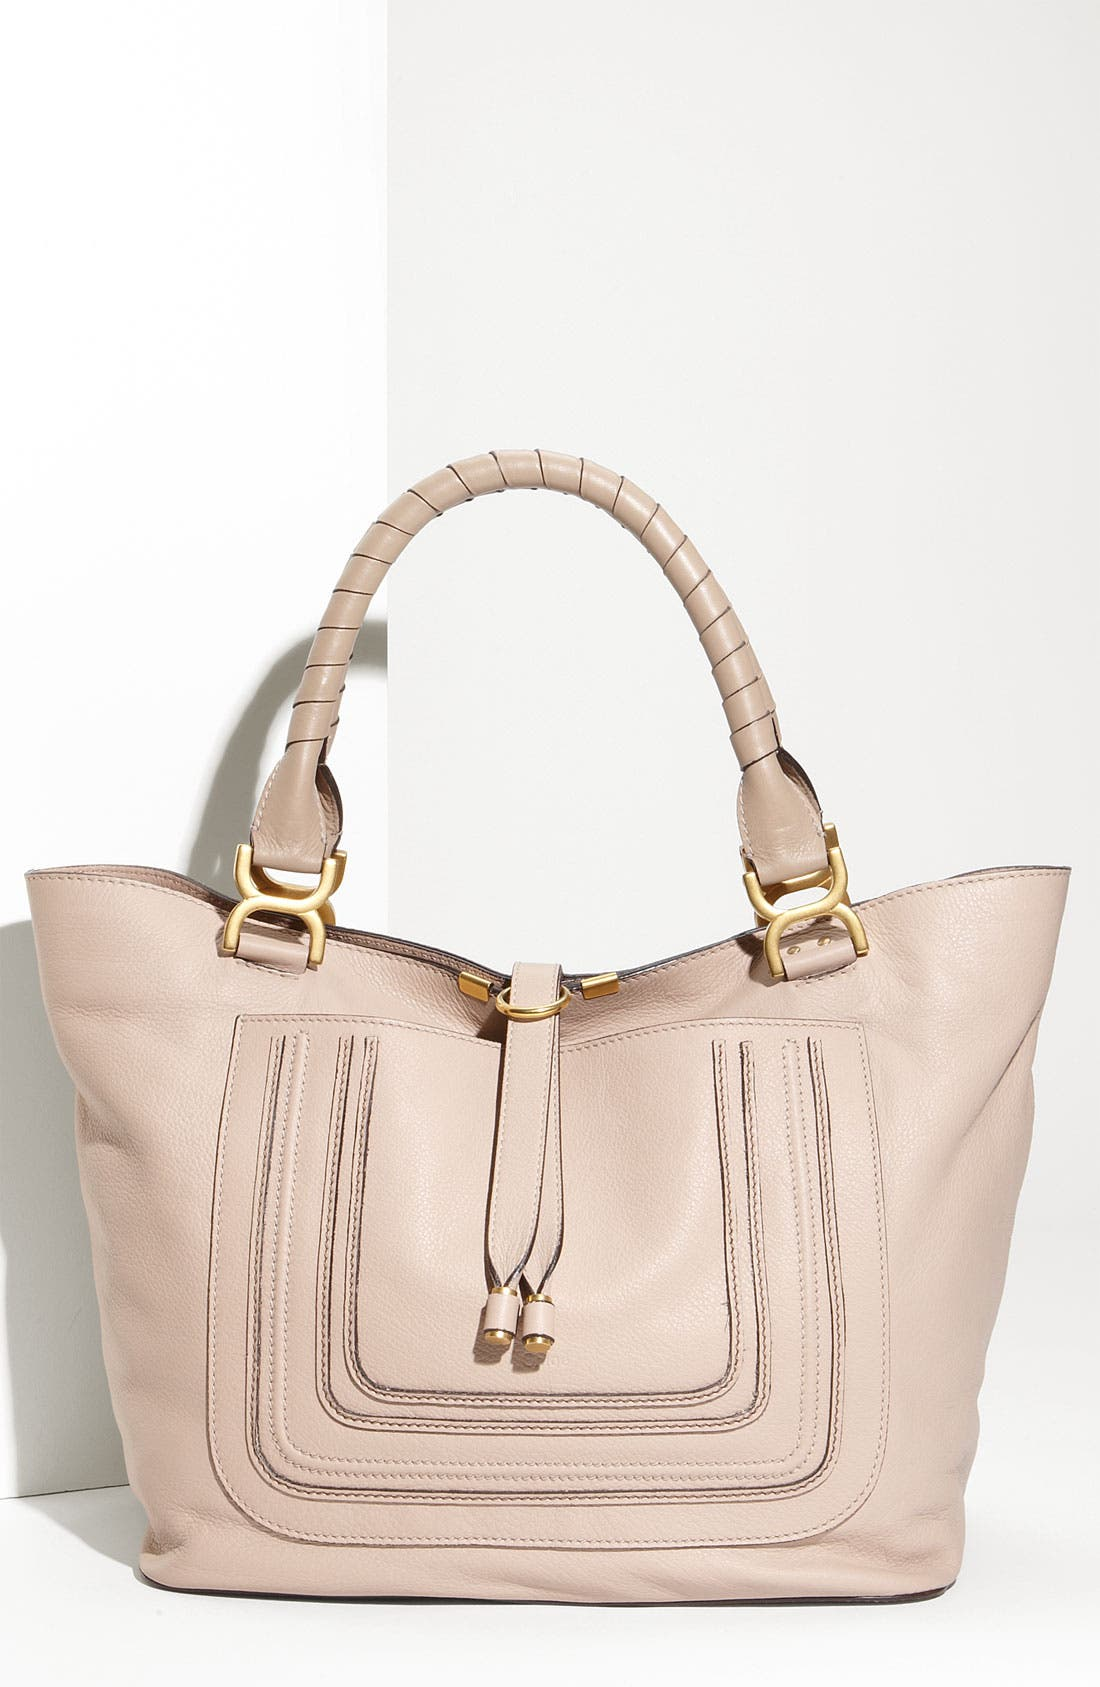 Alternate Image 1 Selected - Chloé 'Marcie - New' Leather Tote